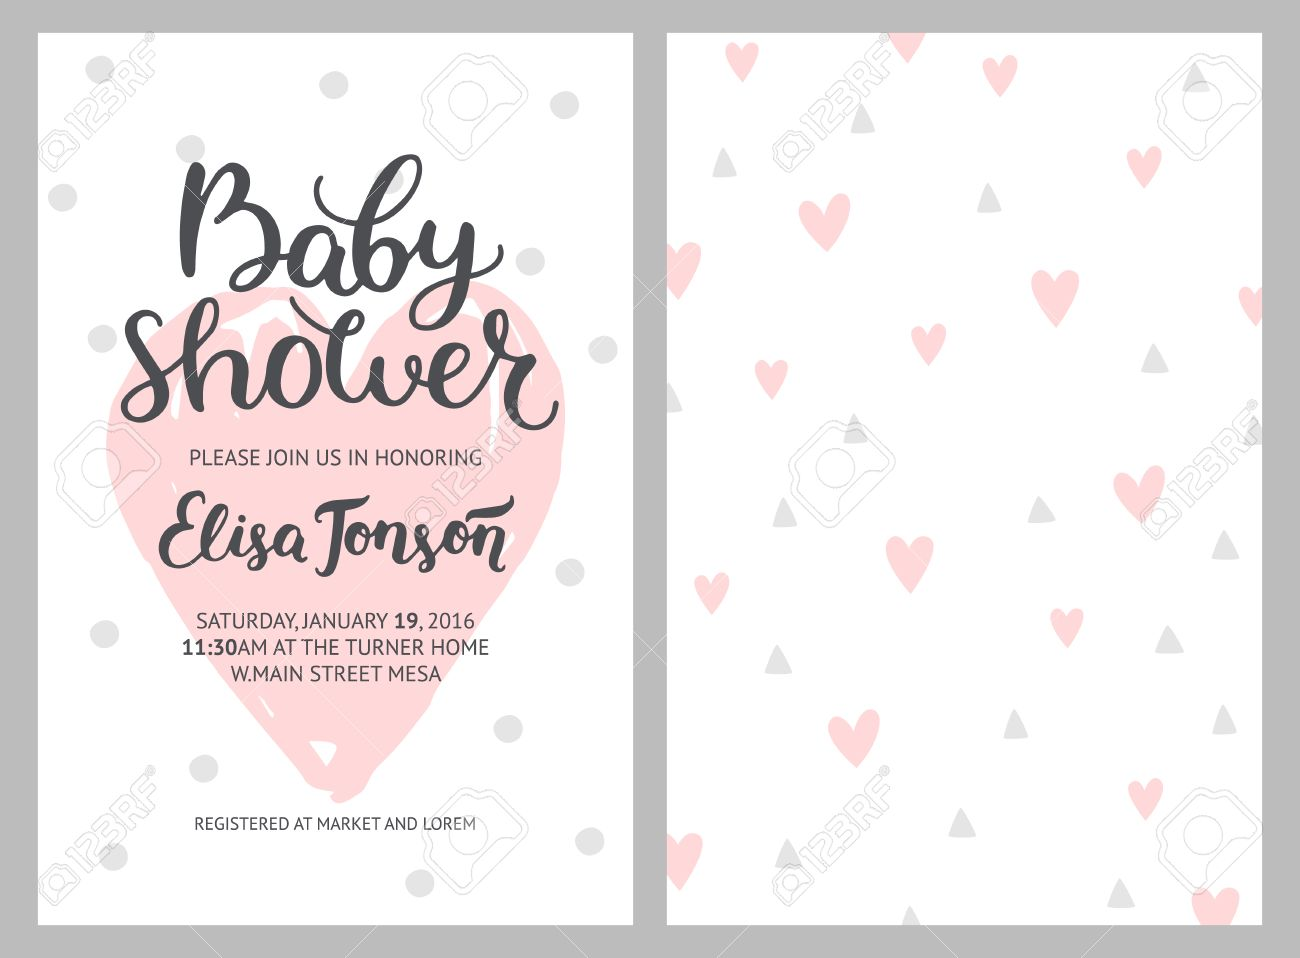 Baby shower girl and boy invitations vector templates shower baby shower girl and boy invitations vector templates shower pastel cards with hearts and stopboris Gallery